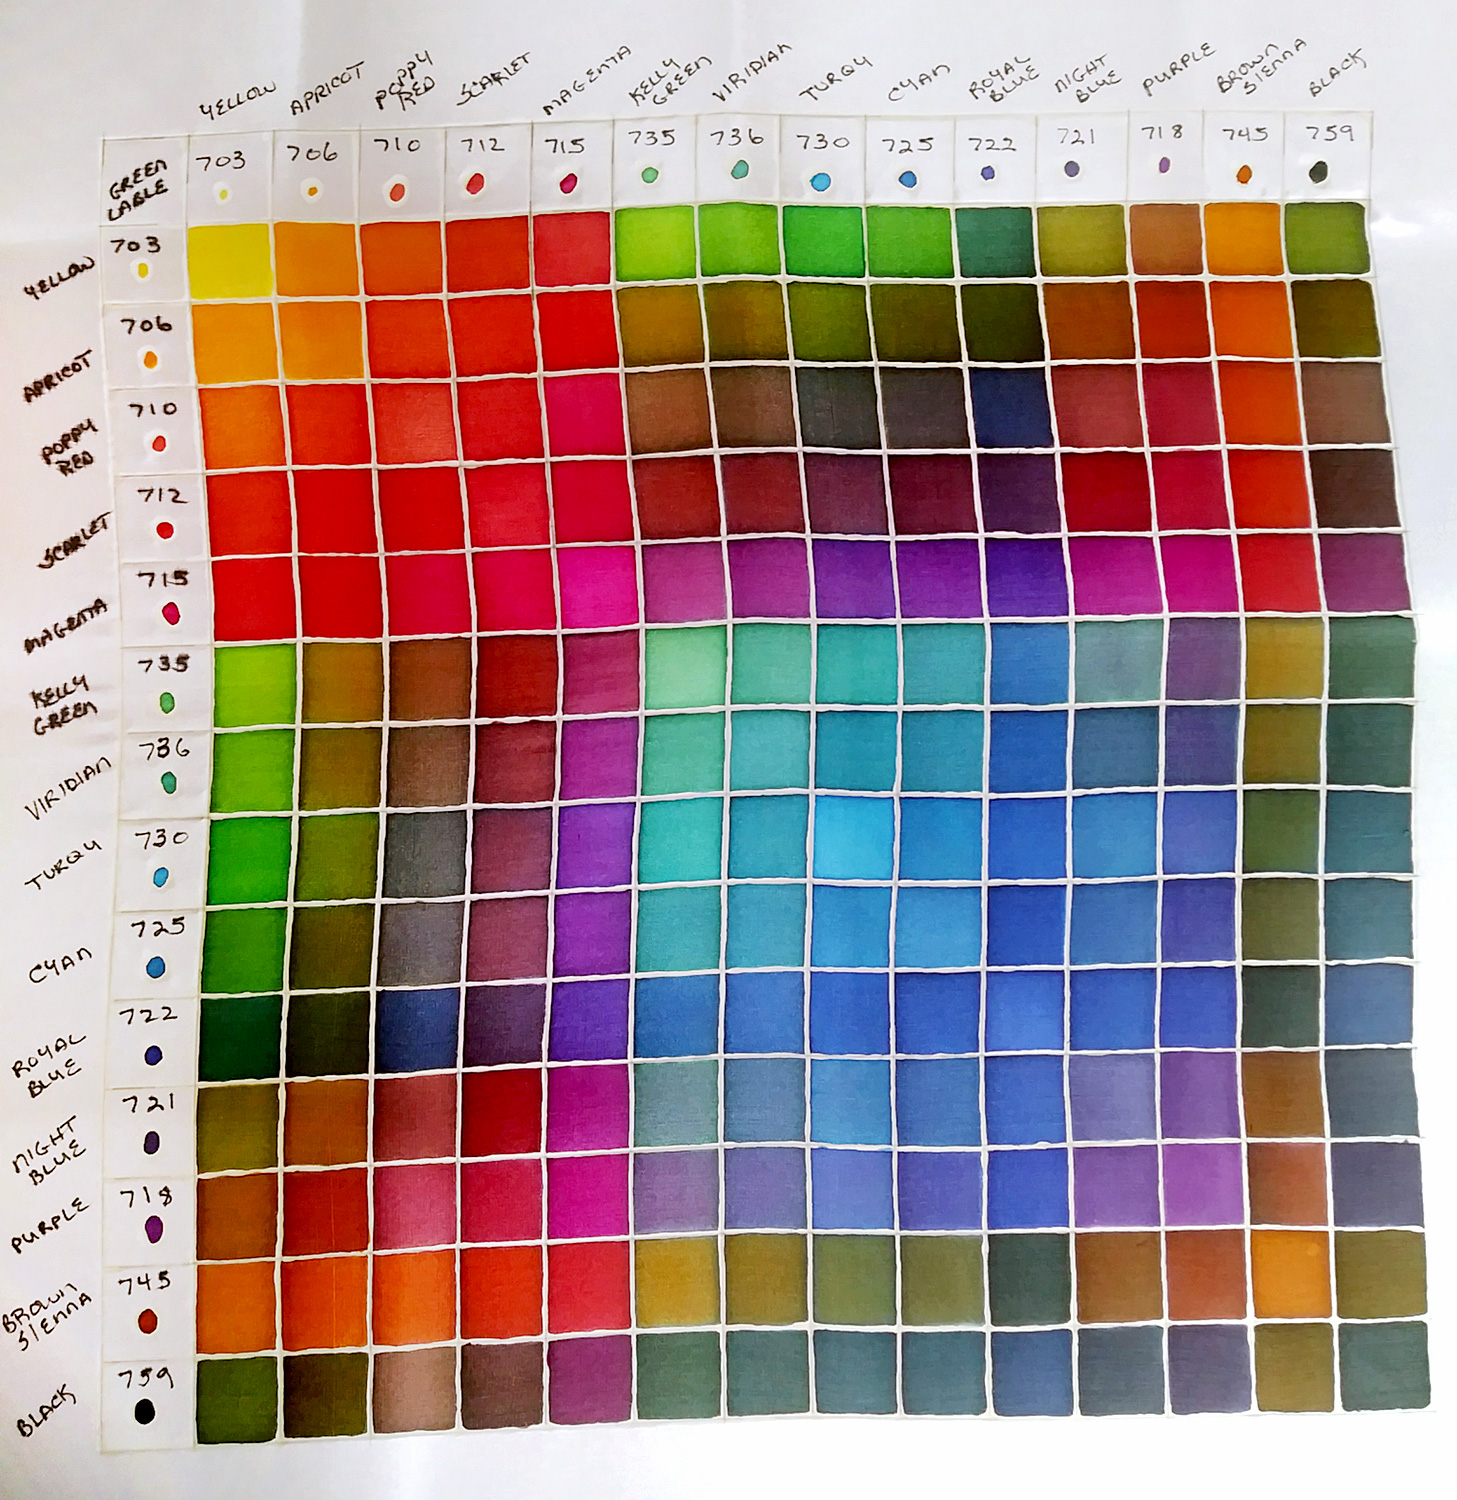 Silk Colors Mixing Chart by Mimi Eichholz